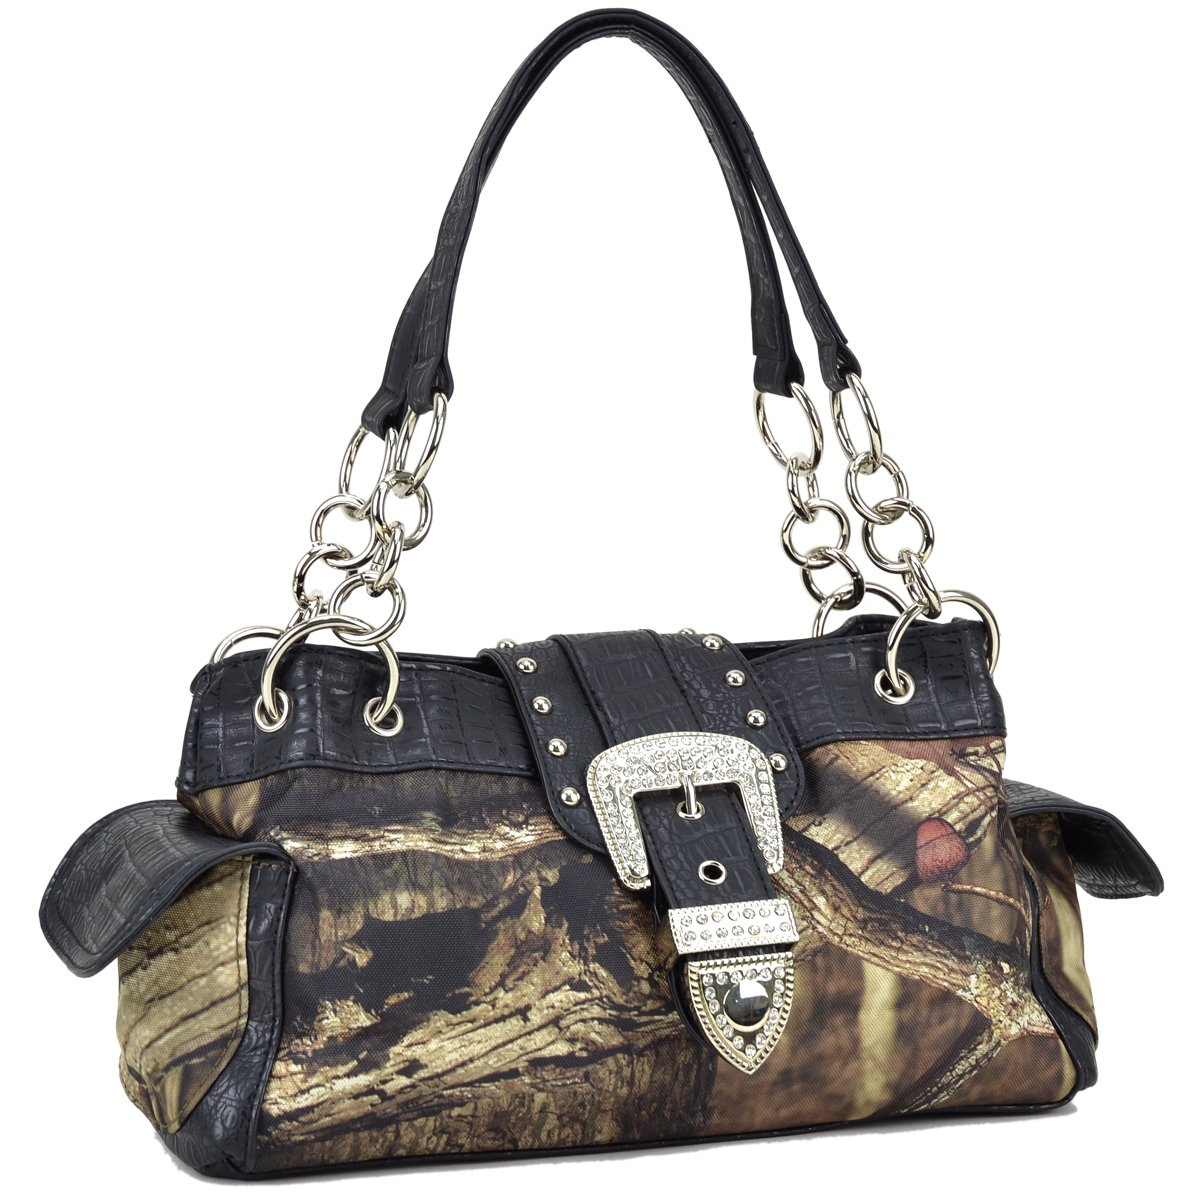 Realtree ® Bags & Wallets レディース B076LKTZF6 51747 Buckle- Brown Camo W/ Black Croco Trim